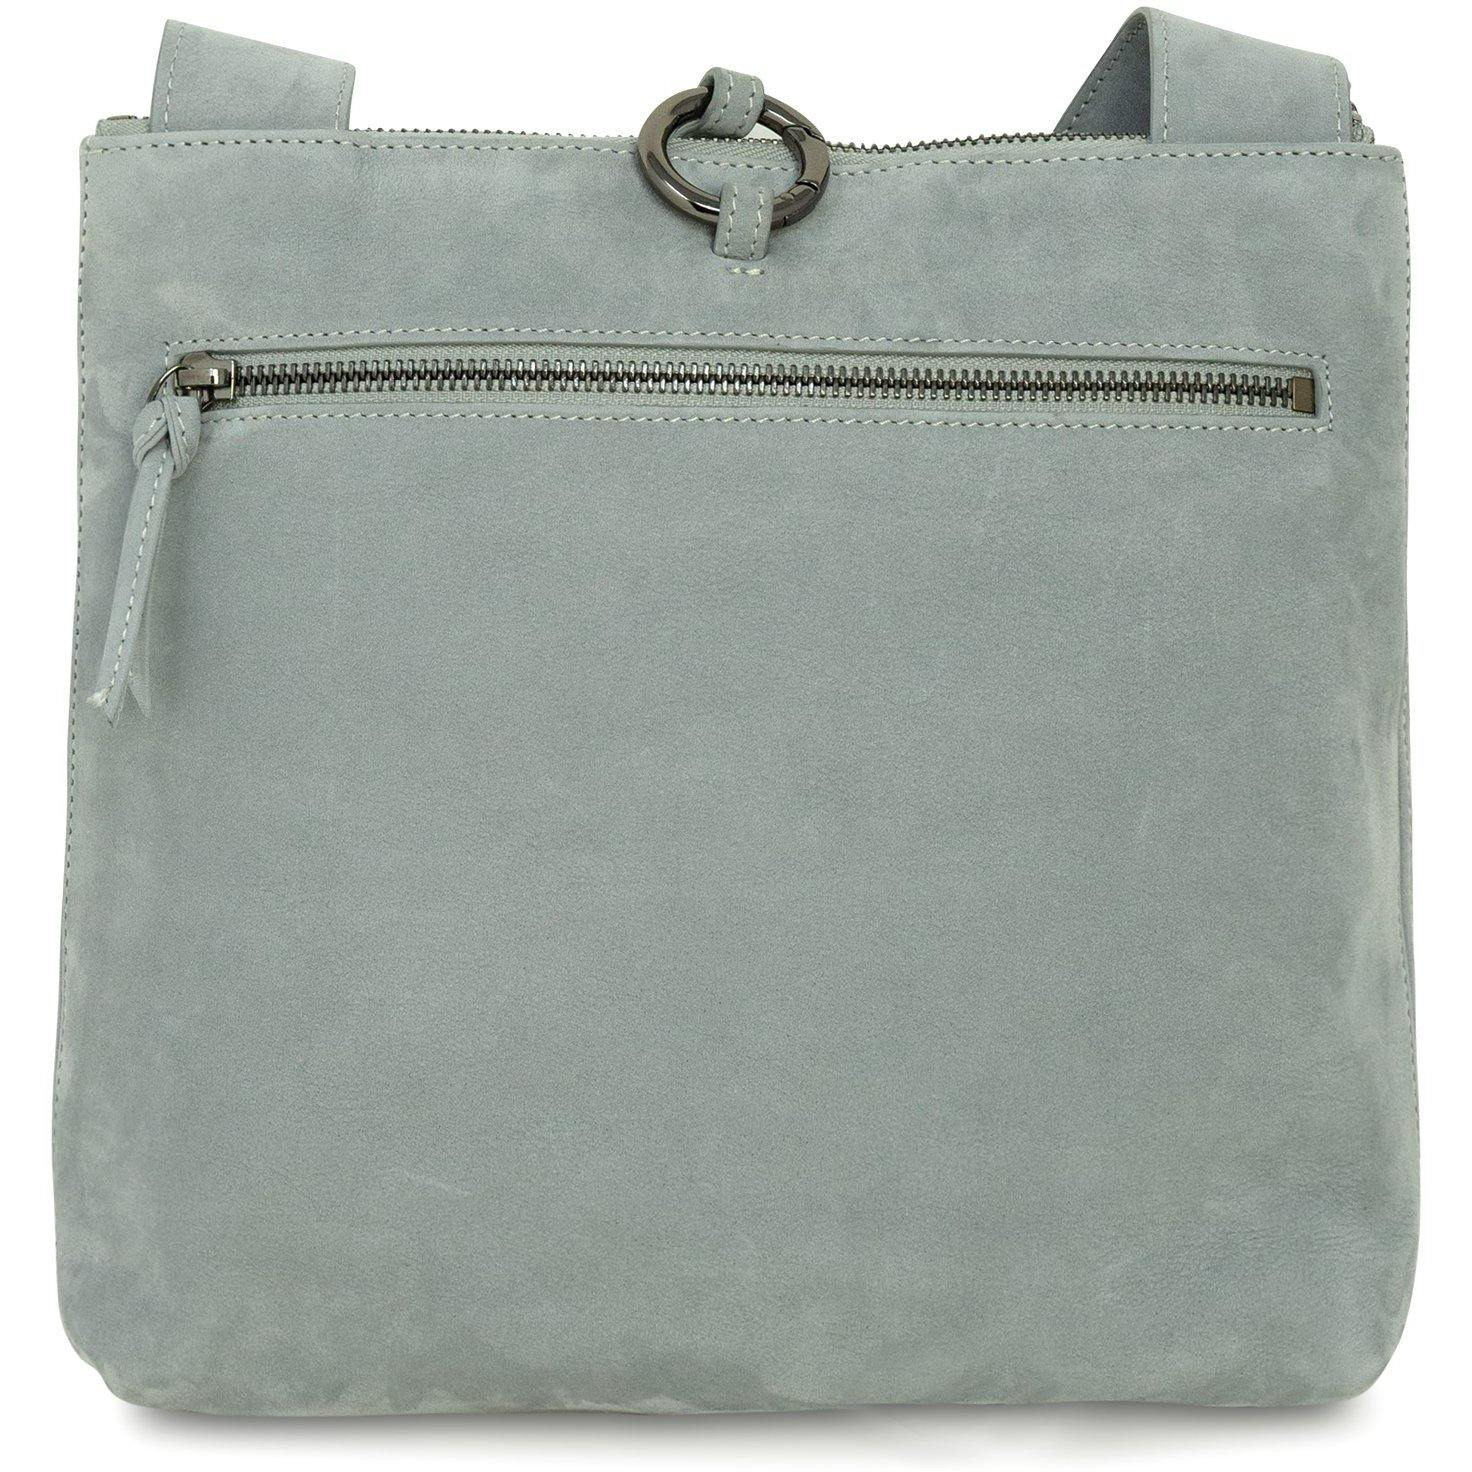 GINGER IS Crossbody Intrecciato Optical Bag in Nabuk Pearl Grey - Jennifer Tattanelli